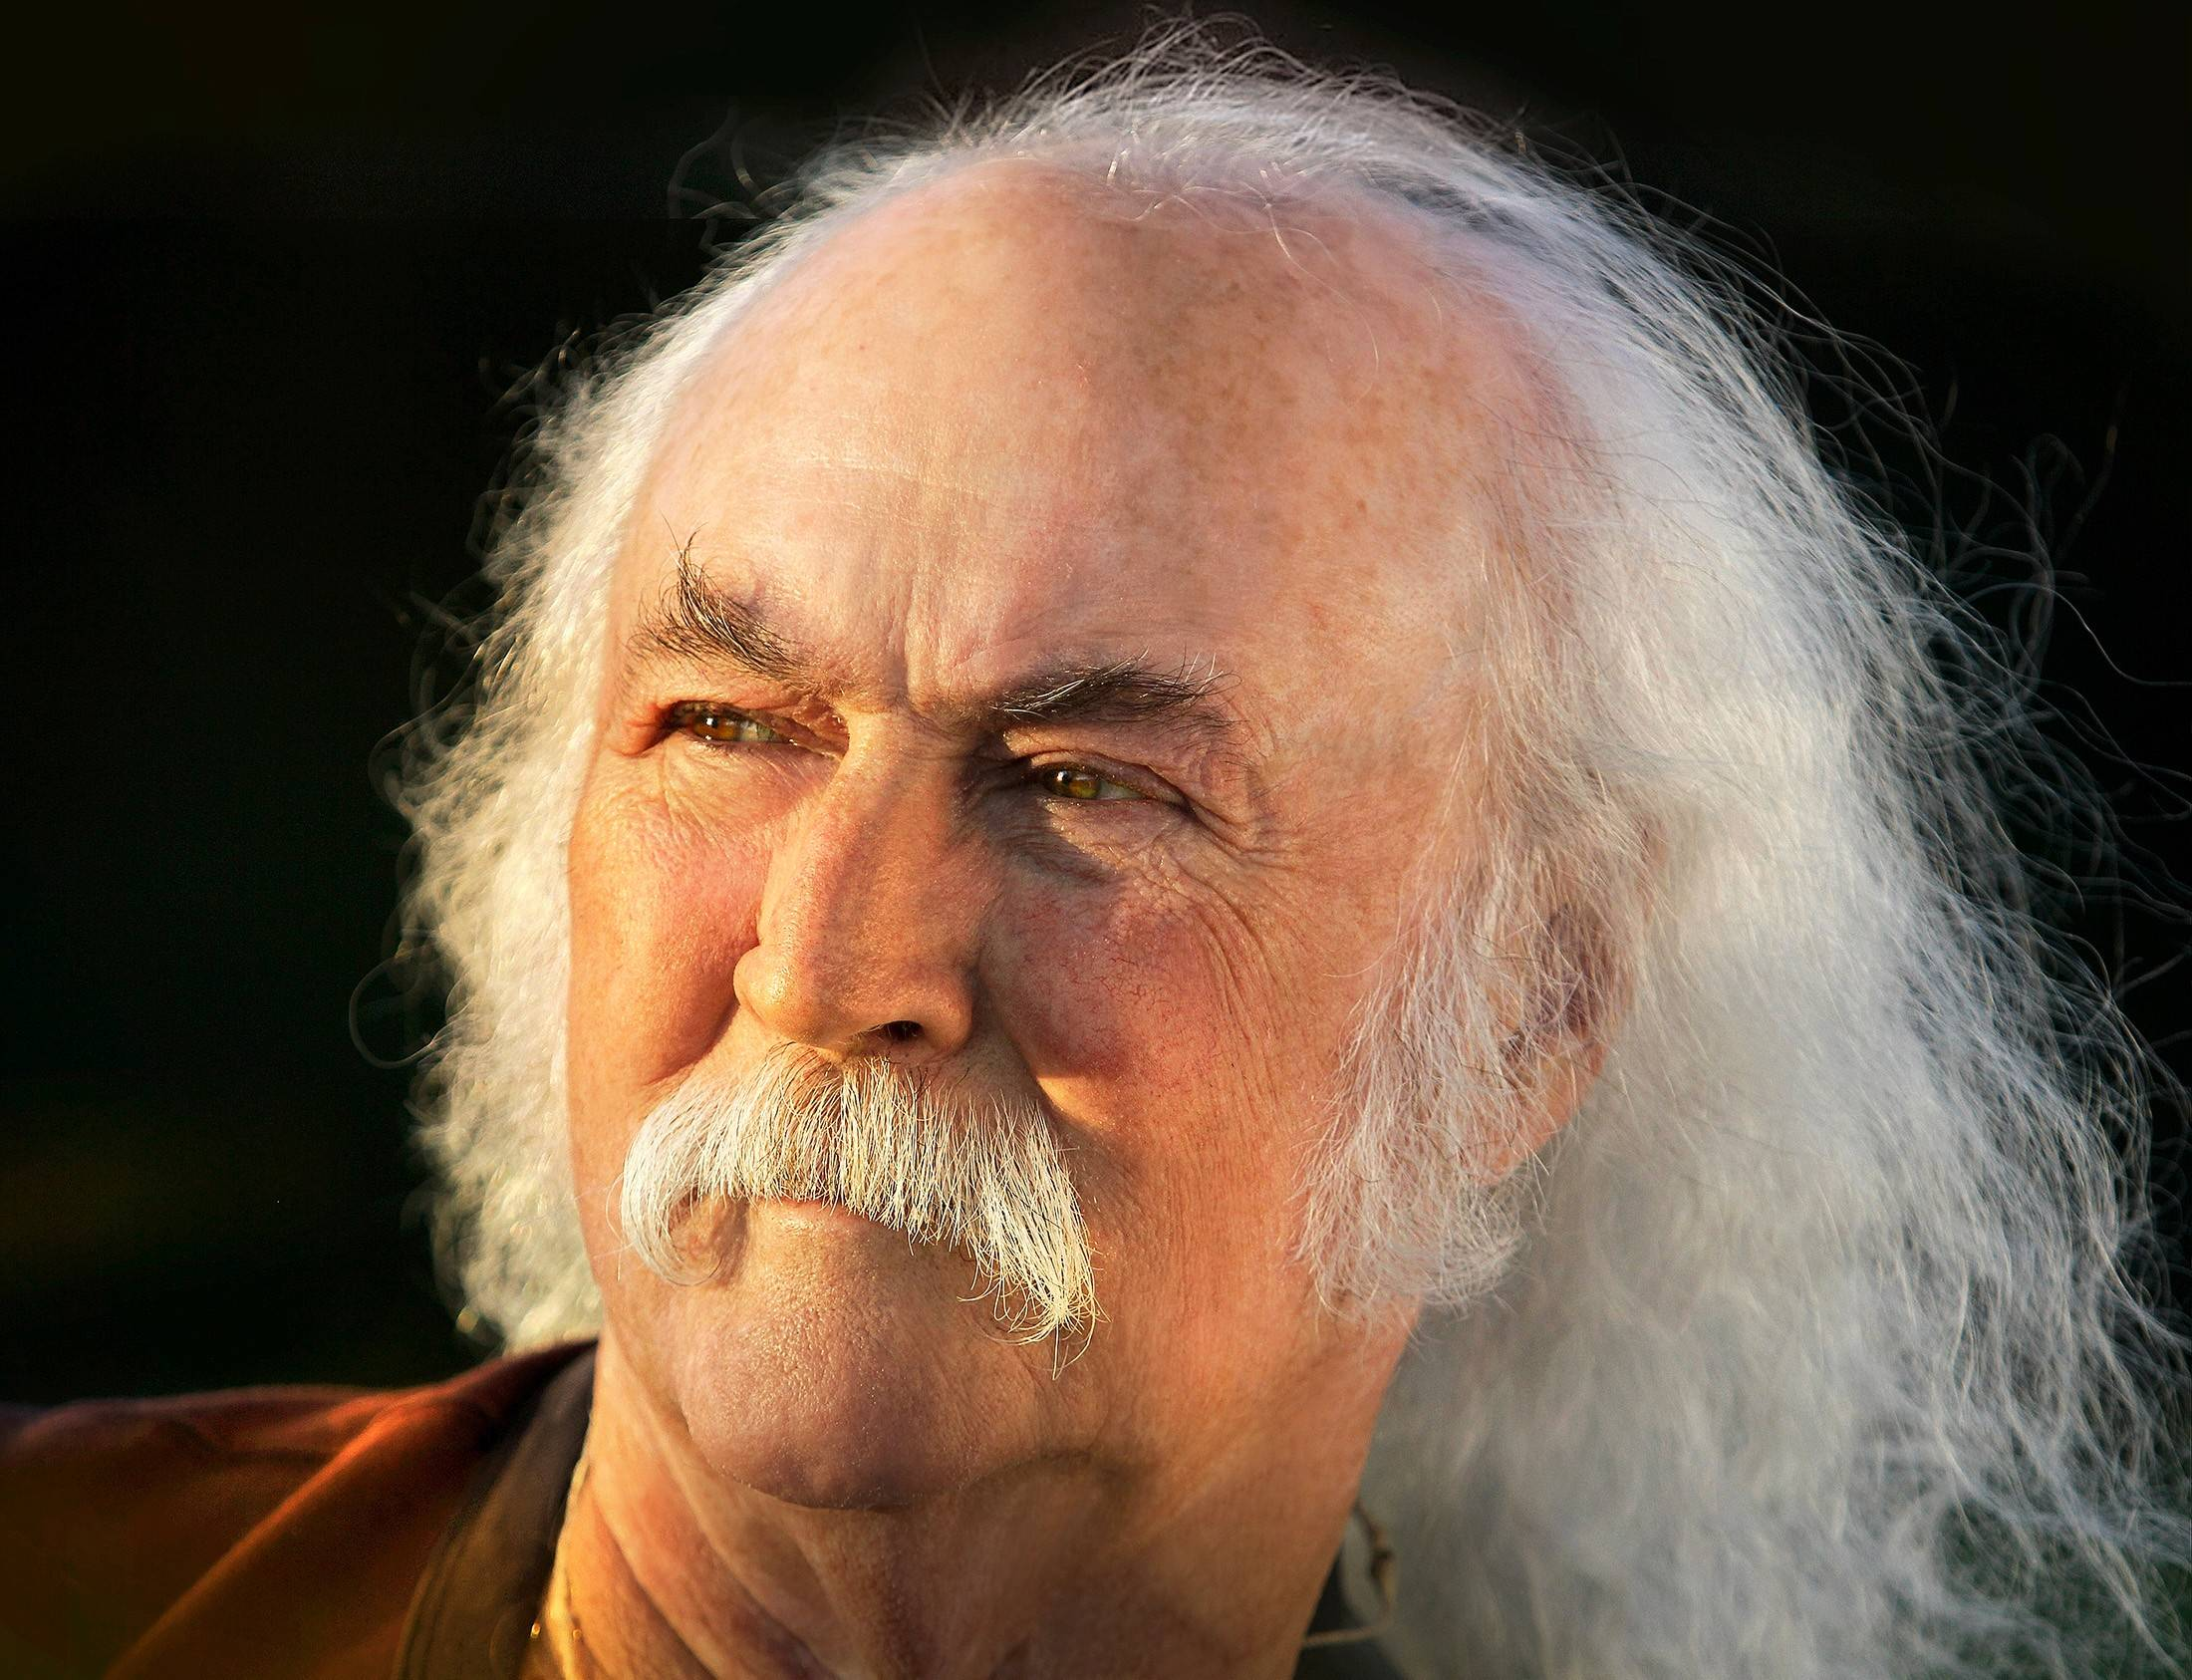 David Crosby is enjoying acclaim for his new solo album but had to postpone tour dates after heart surgery earlier this month.